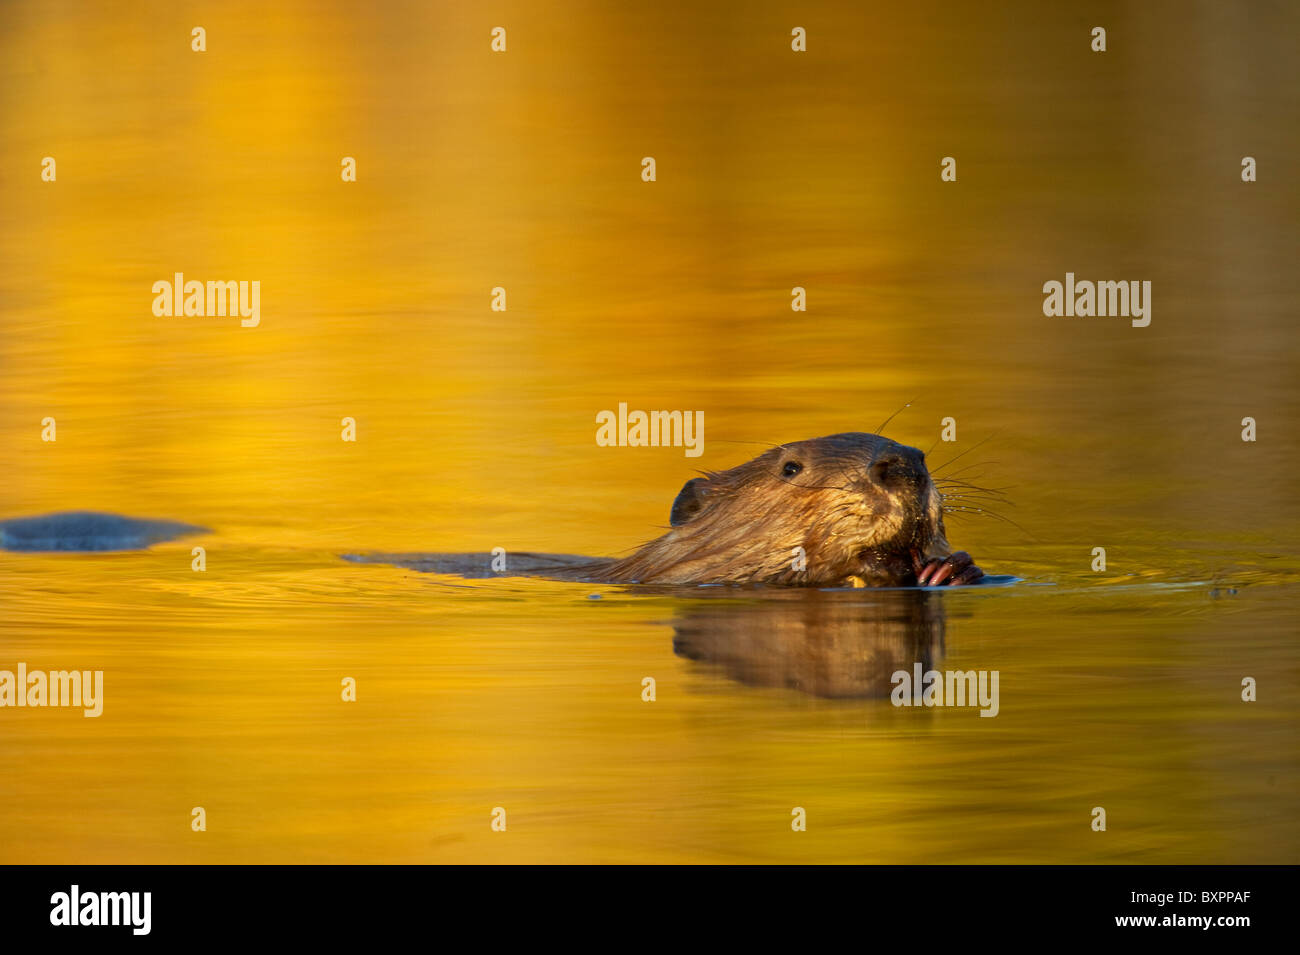 A beaver floats effortlessly through the warm tone reflection of the autumn sunlight while chewing on a stick. - Stock Image